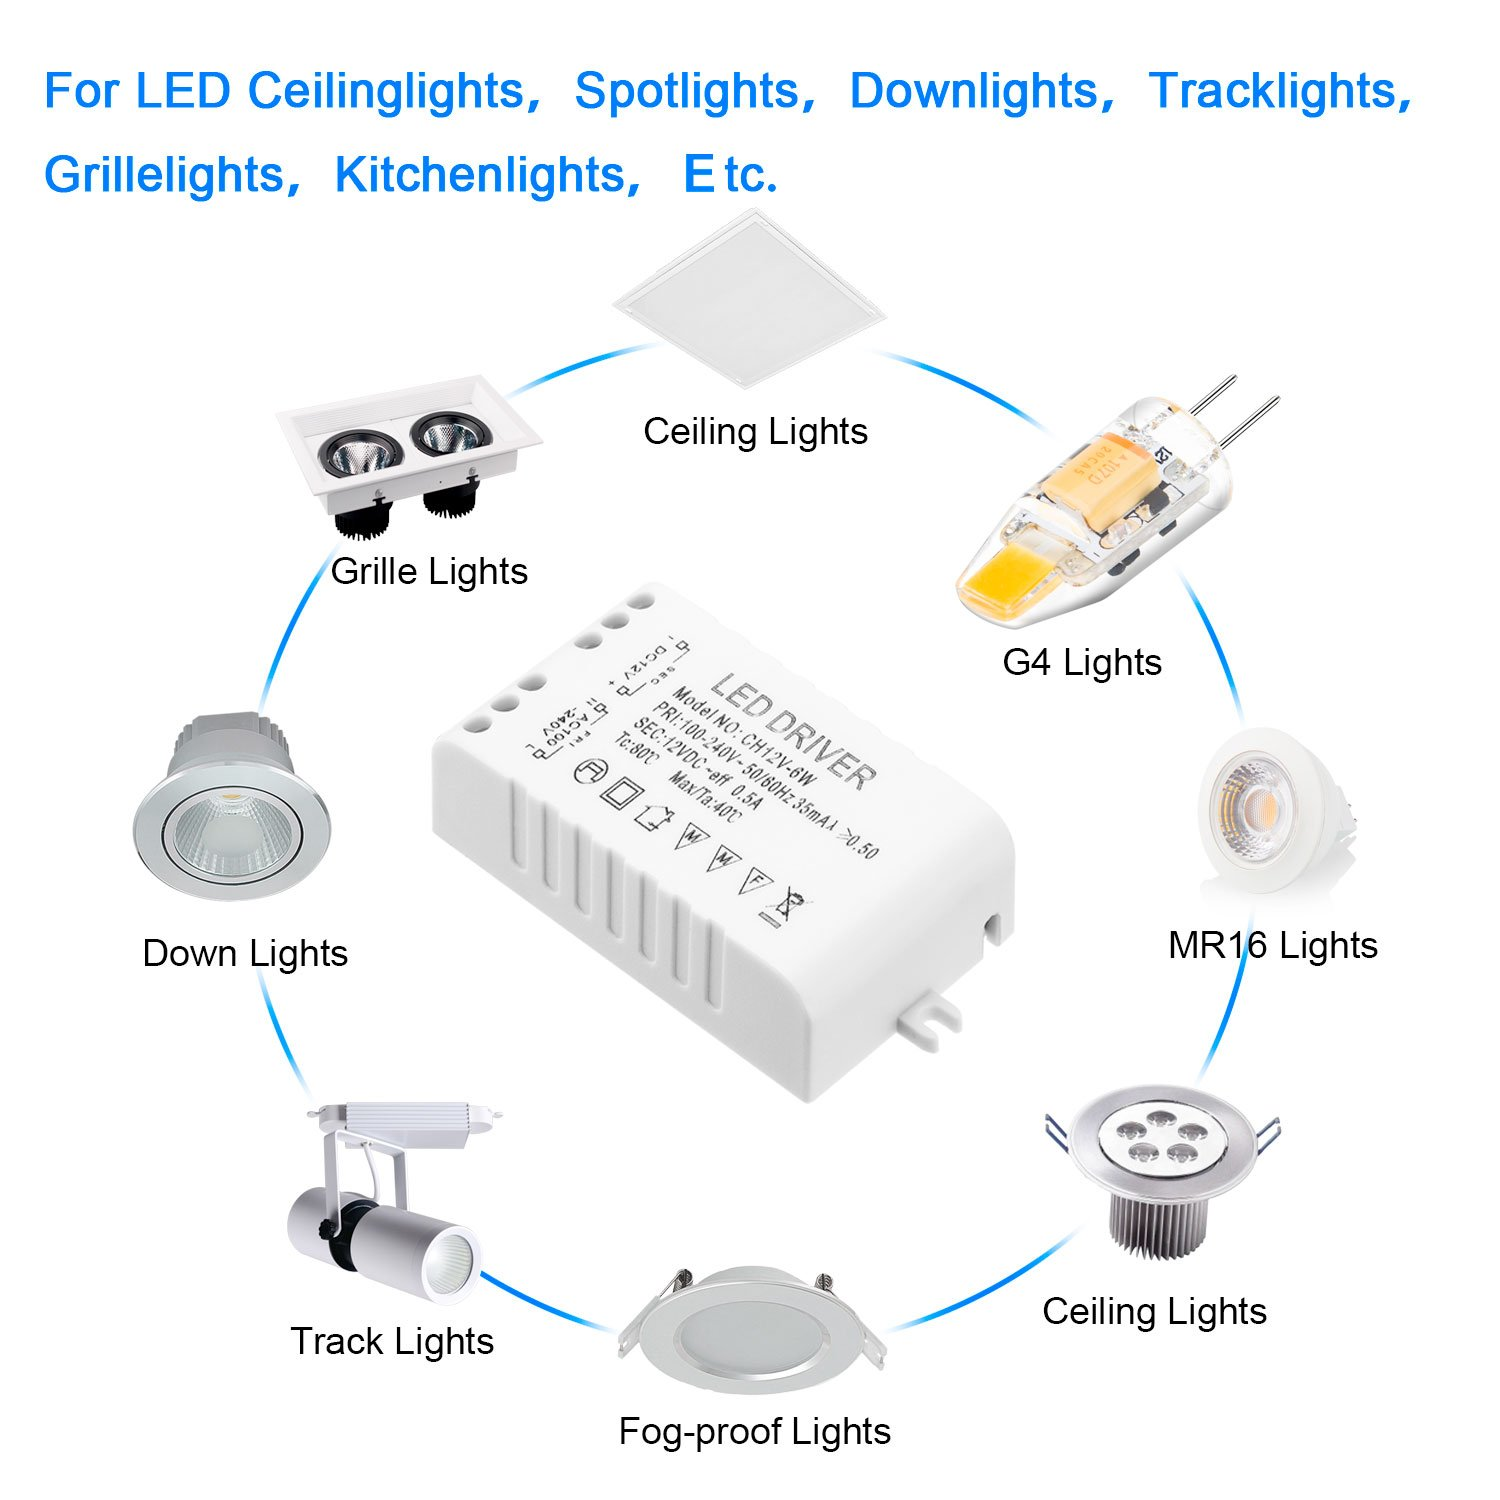 Led Power Supply Driver Transformer 6w 12v Dc 05a Constant Bulb Circuit Diagram Lamp Voltage For Leds Including Strip Lights And G4 Mr11 Mr16 Light Bulbs